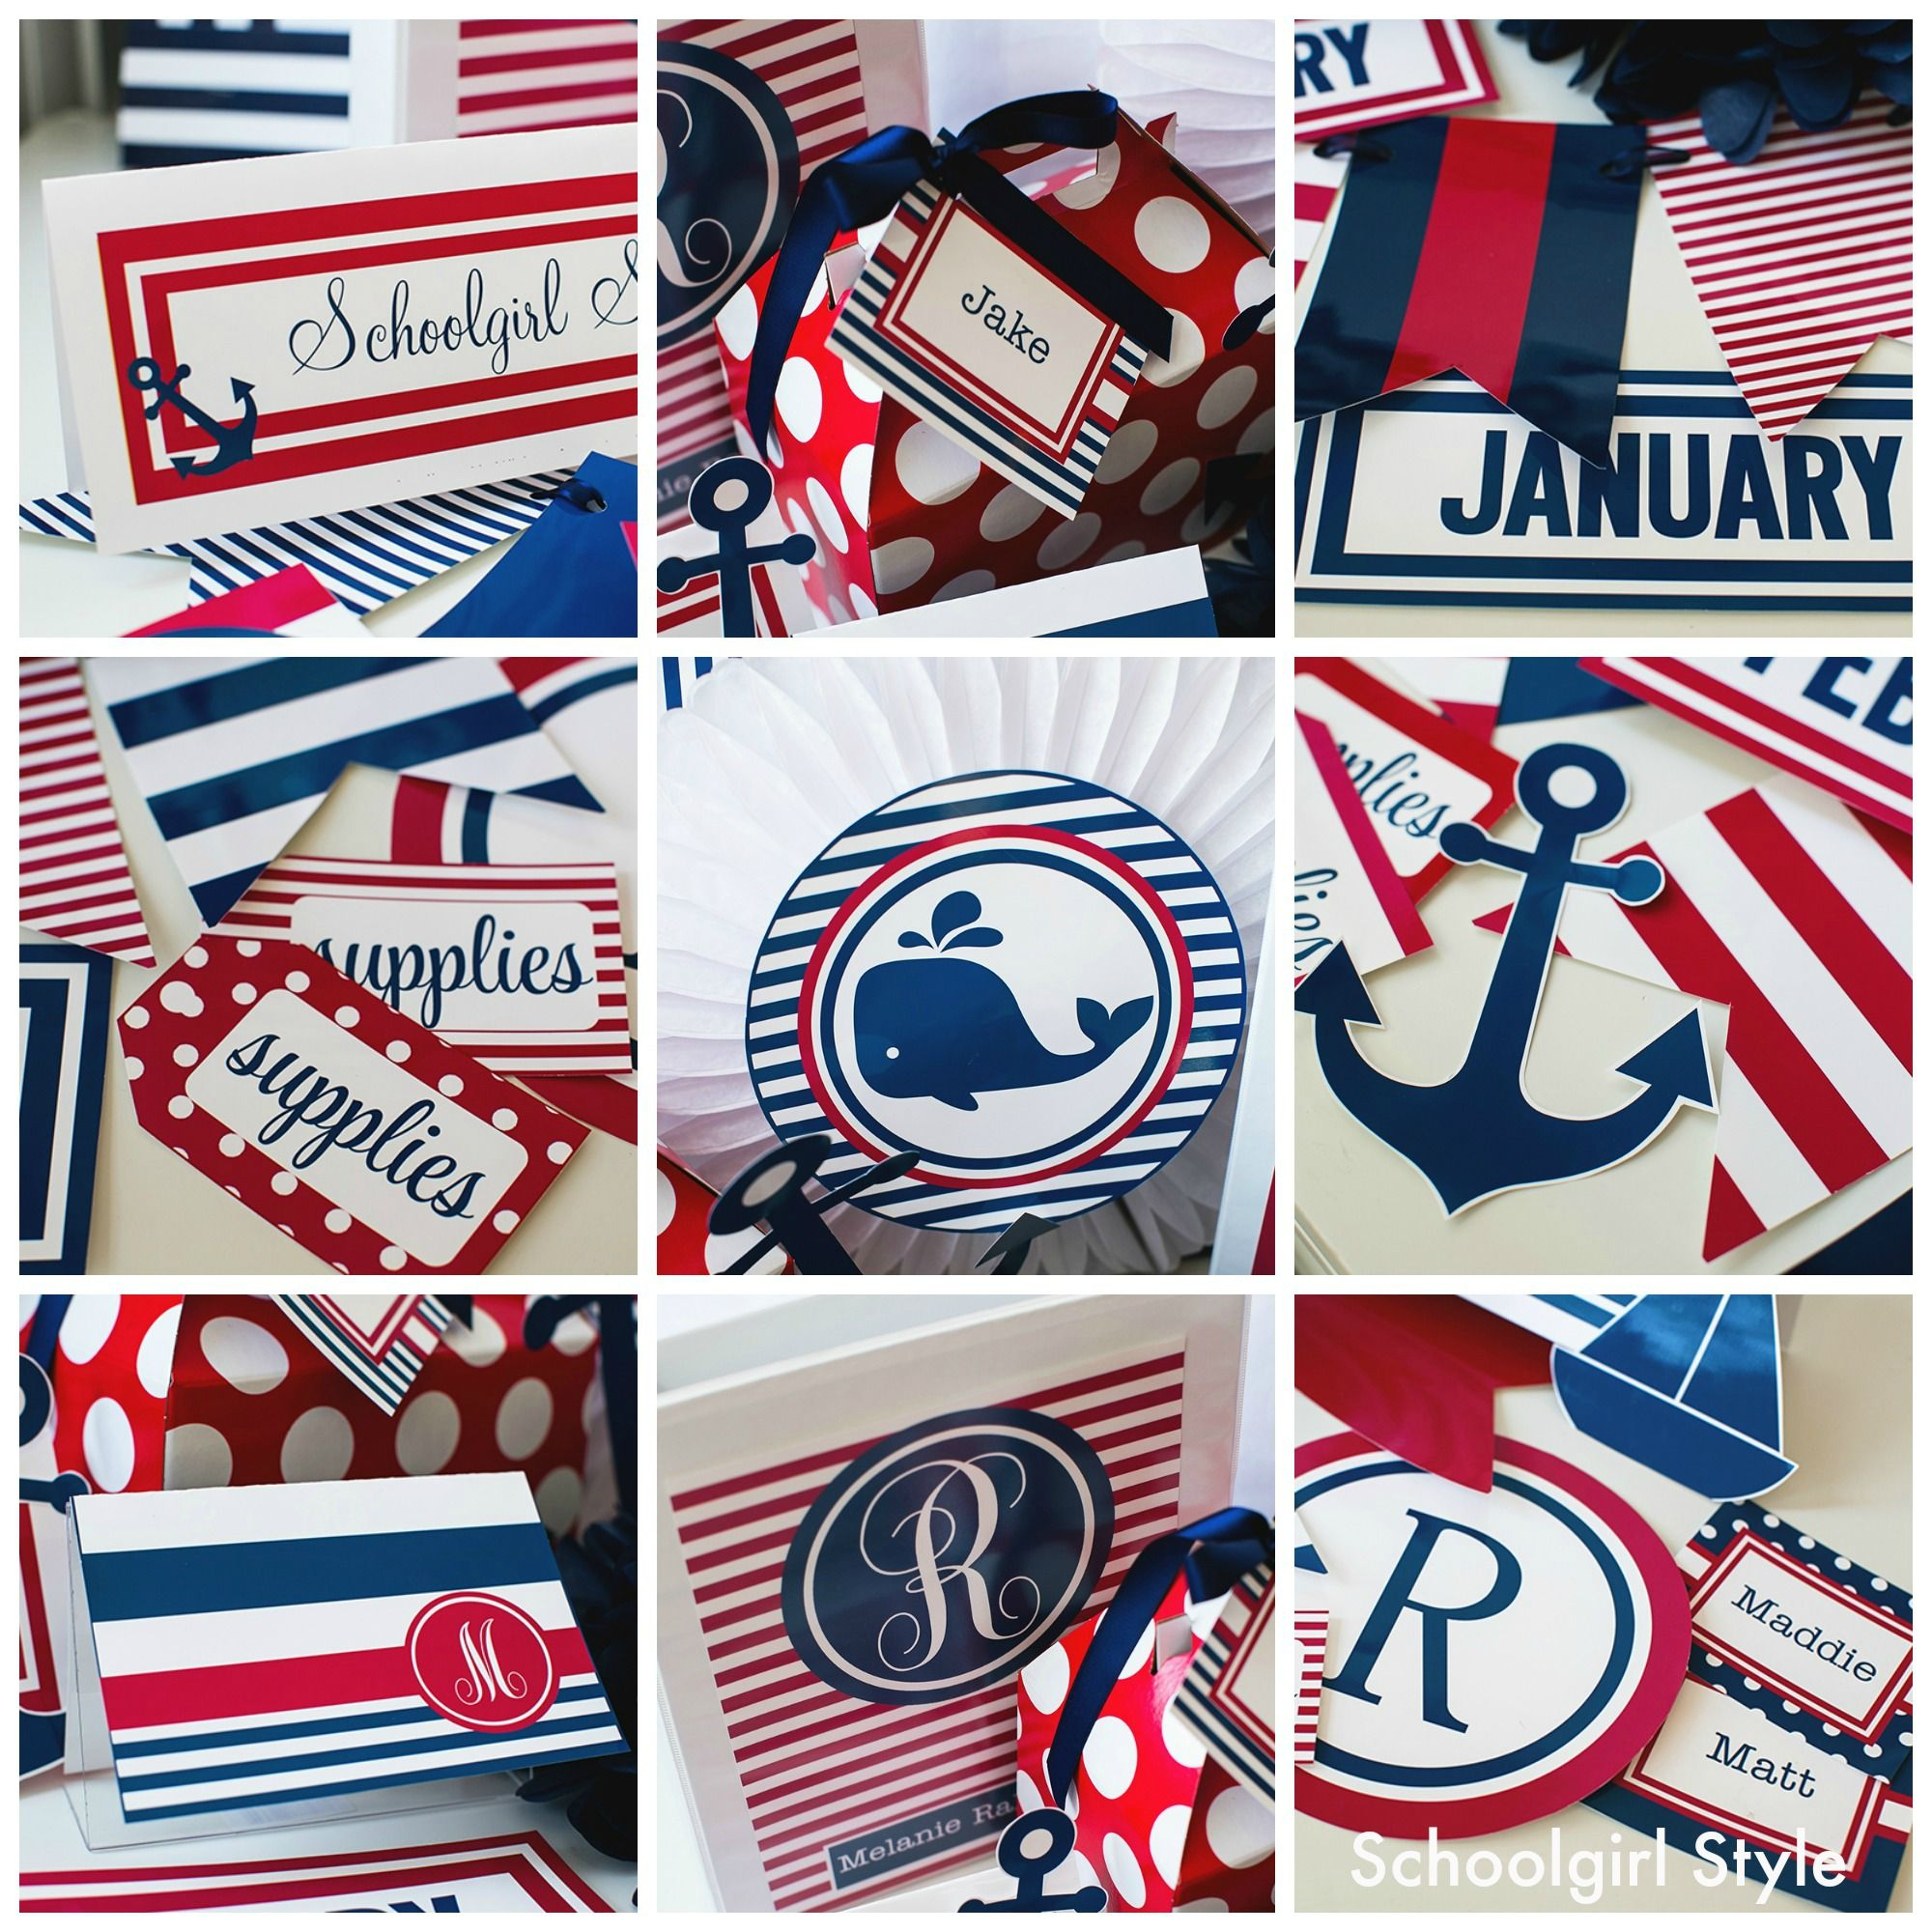 Design Nautical Theme red white blue preppy nautical sailing americana classroom theme decor by schoolgirl style decor